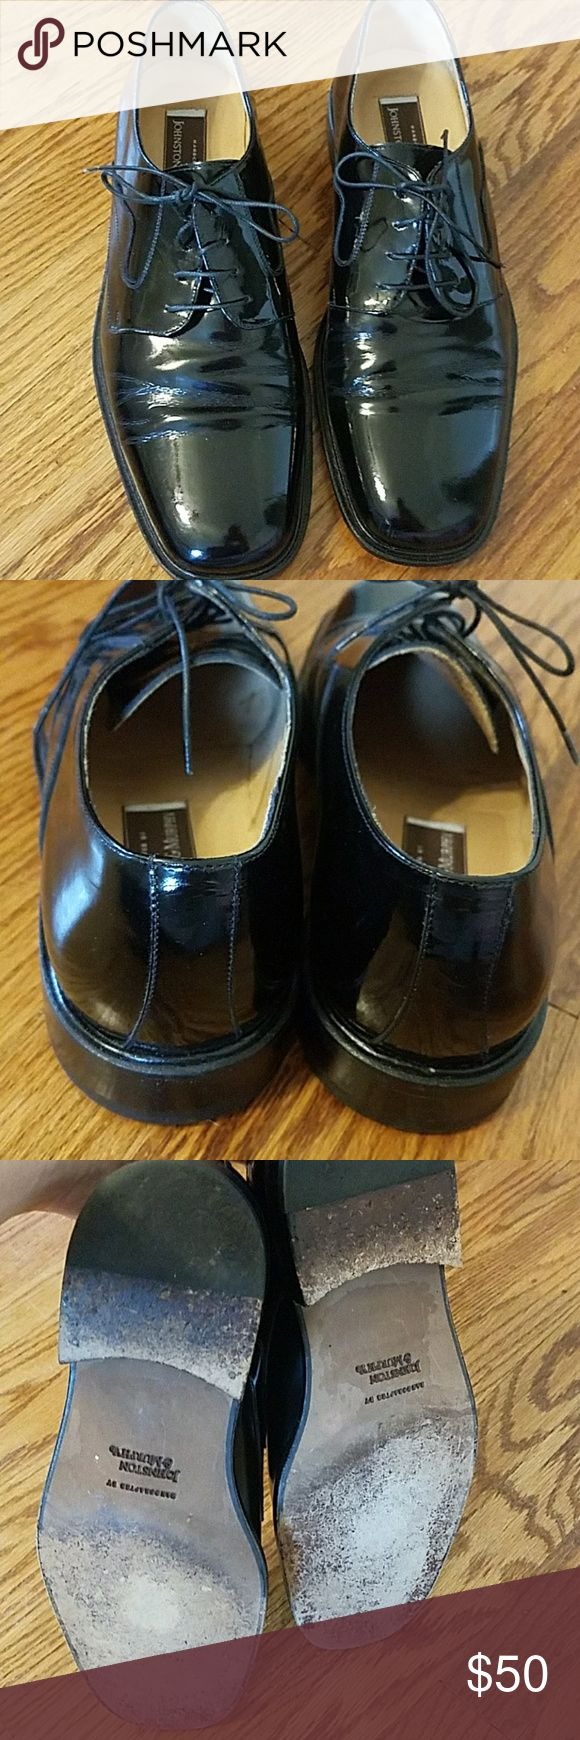 Johnson and Murphy Black Patent Shoes Size 10 1/2 Johnson and Murphy Black Patent Shoes Size 10 1/2 Made in Italy Great Condition Johnston & Murphy Shoes Oxfords & Derbys